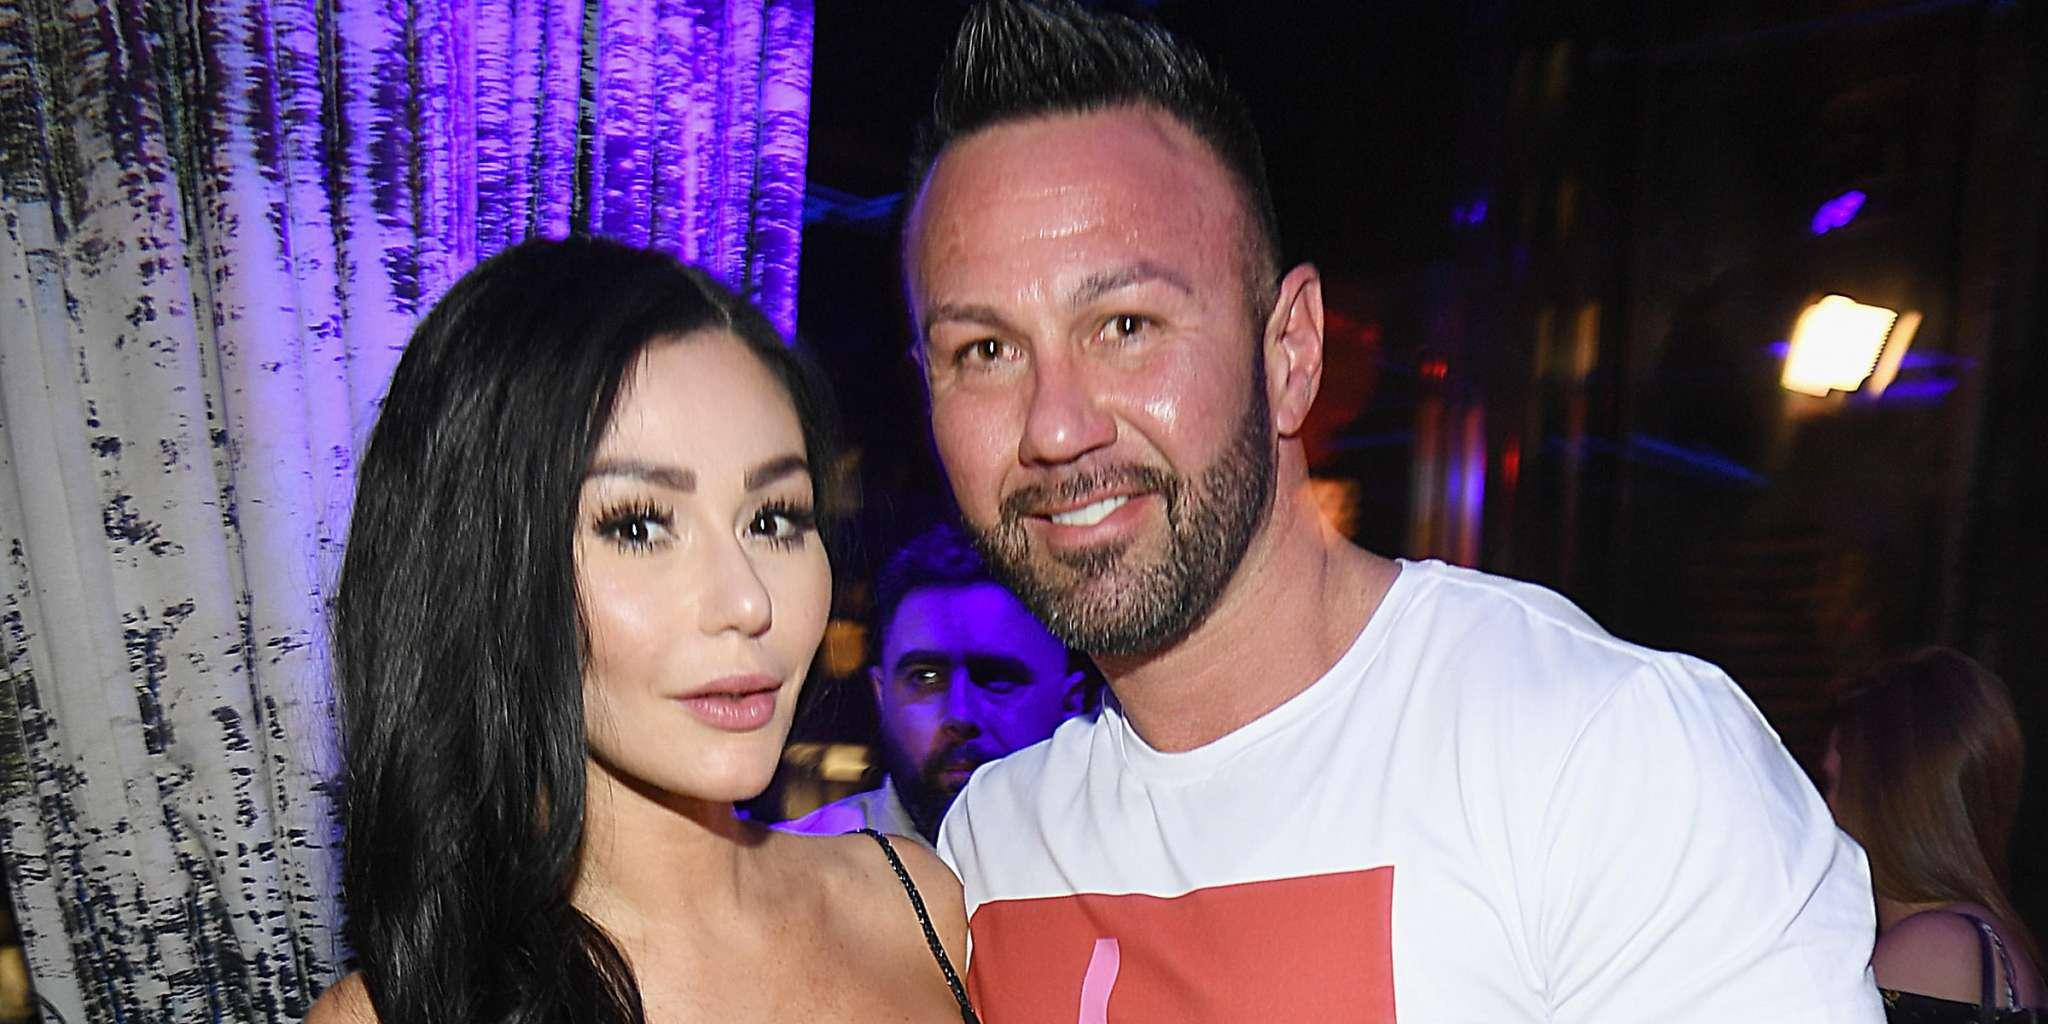 JWoww And Roger Mathews To Spend The Holidays Apart - Source Says She's 'Sad' About It Despite Their Drama!